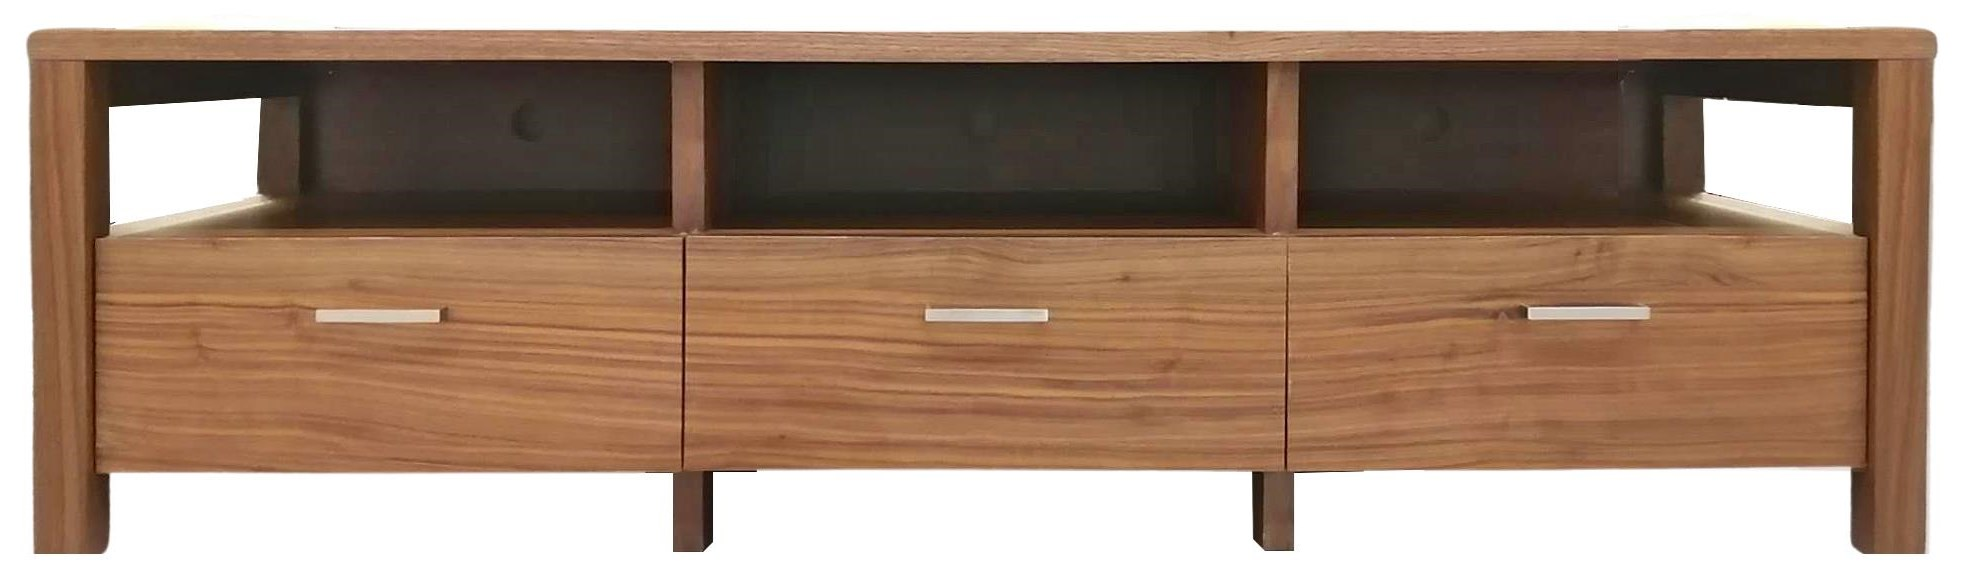 Cairo Cairo BTV 2062-108 Walnut | Entertainment So by Verbois at Upper Room Home Furnishings